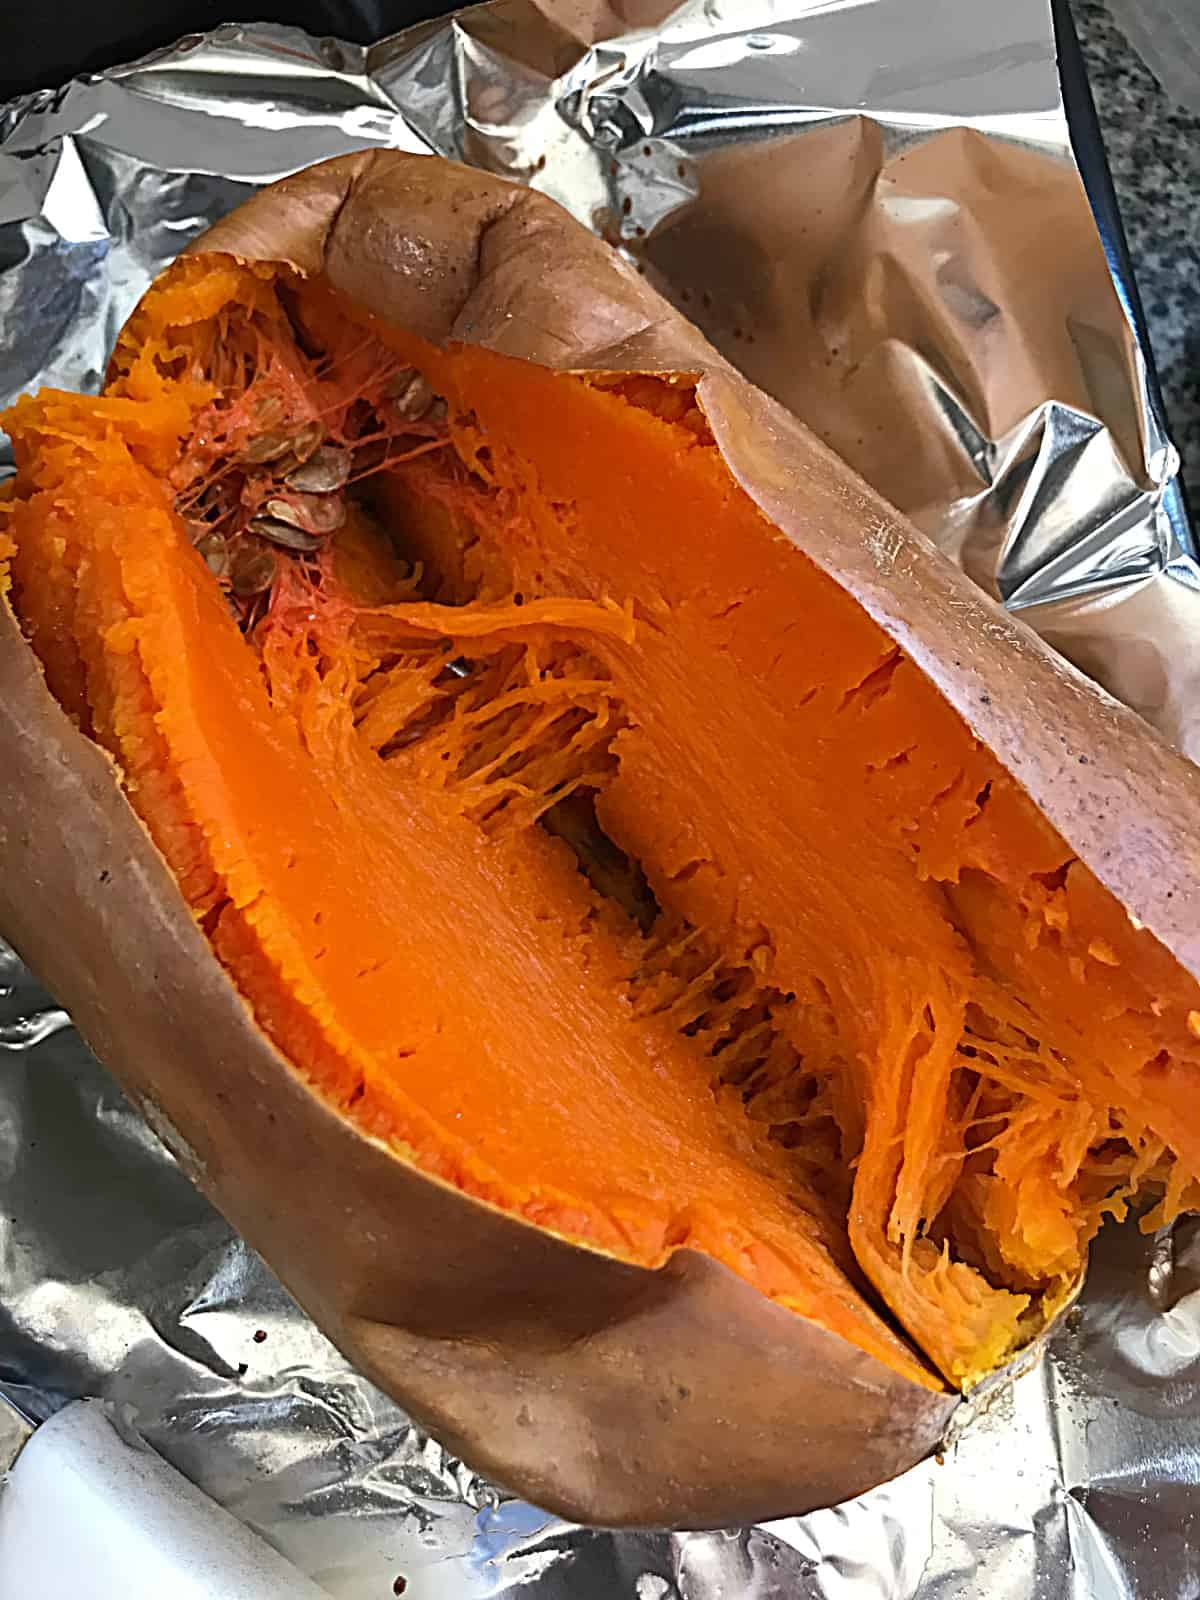 Whole baked butternut squash cut in half on a piece of aluminum paper